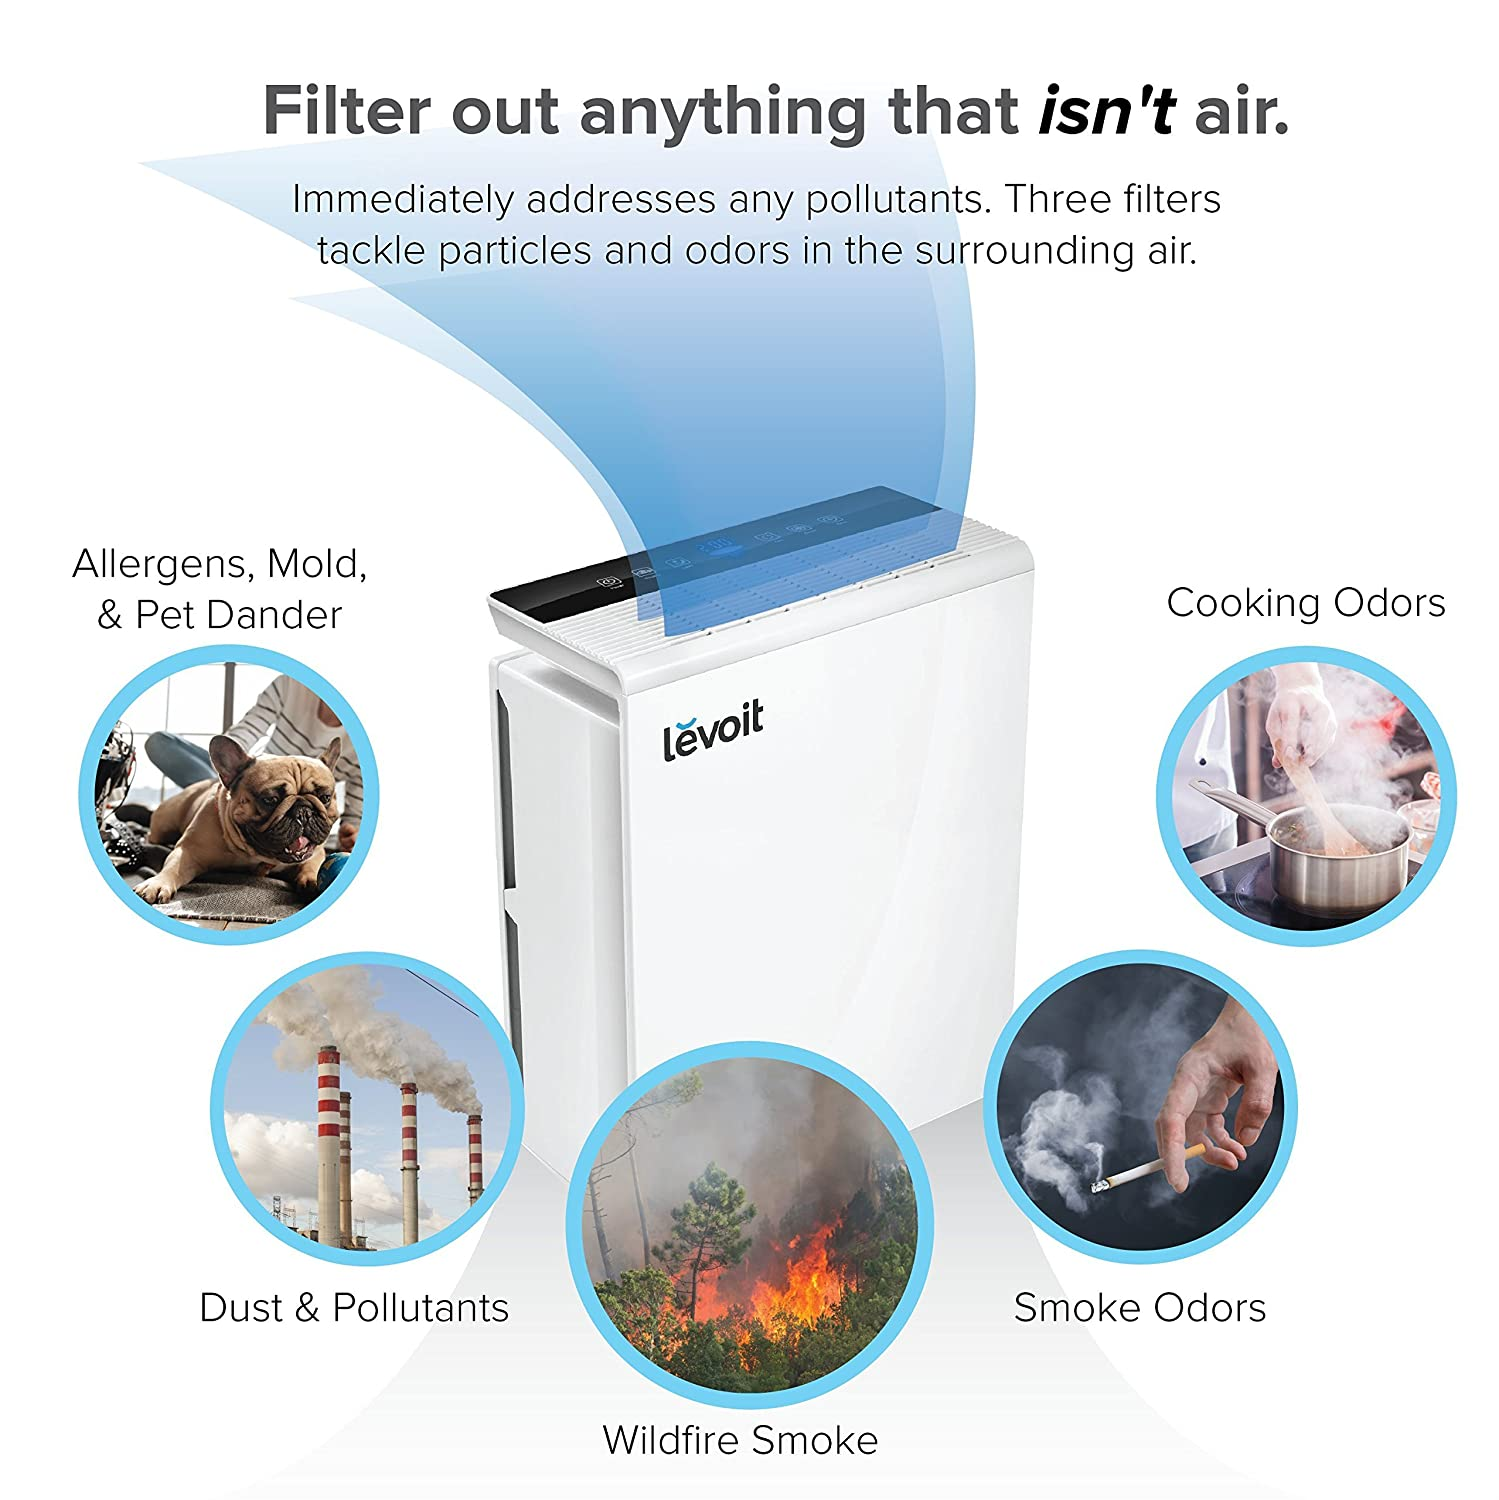 Best air filter for allergies and pet dander - Amazon Com Levoit Air Purifier With True Hepa Filter Odor Allergen Allergies Eliminator Cleaner Home Air Filtration For Dust Mold Pets Smokers